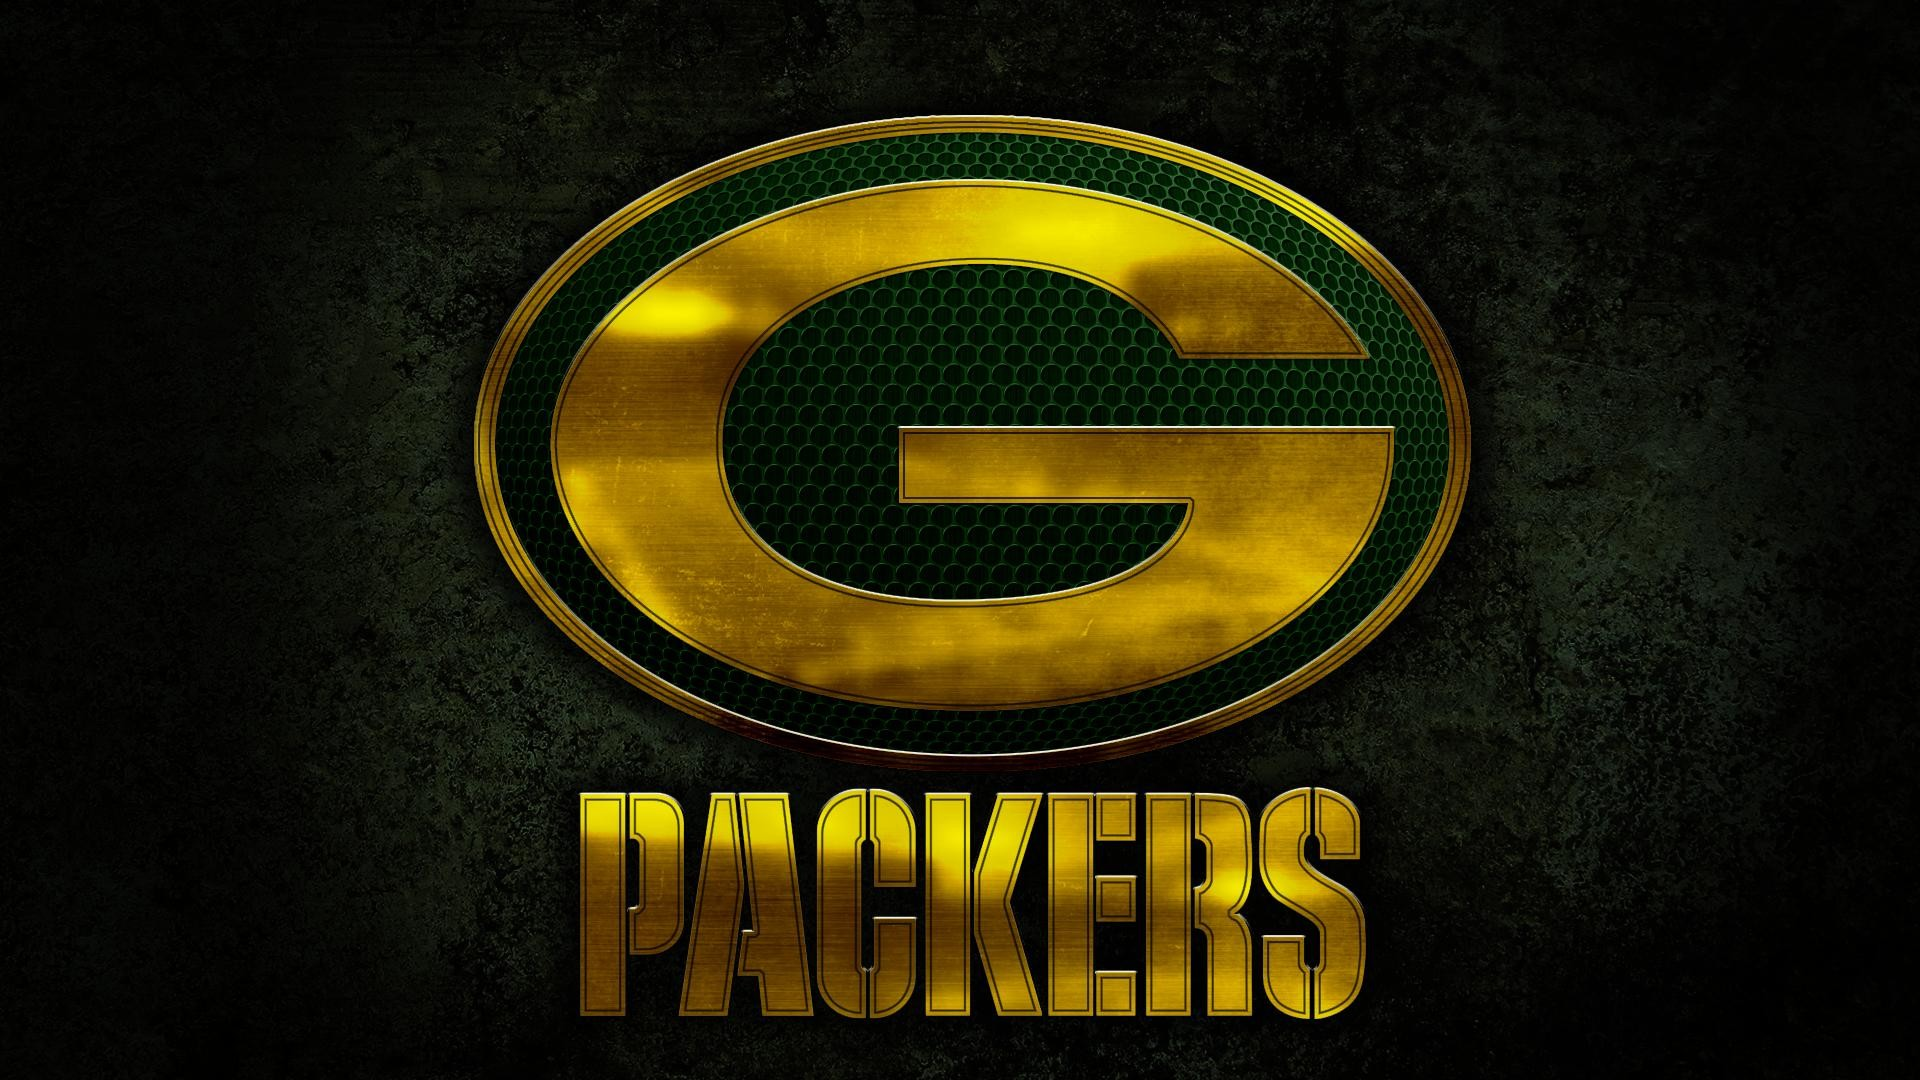 Green Bay Packers Football Wallpapers (72+ Images